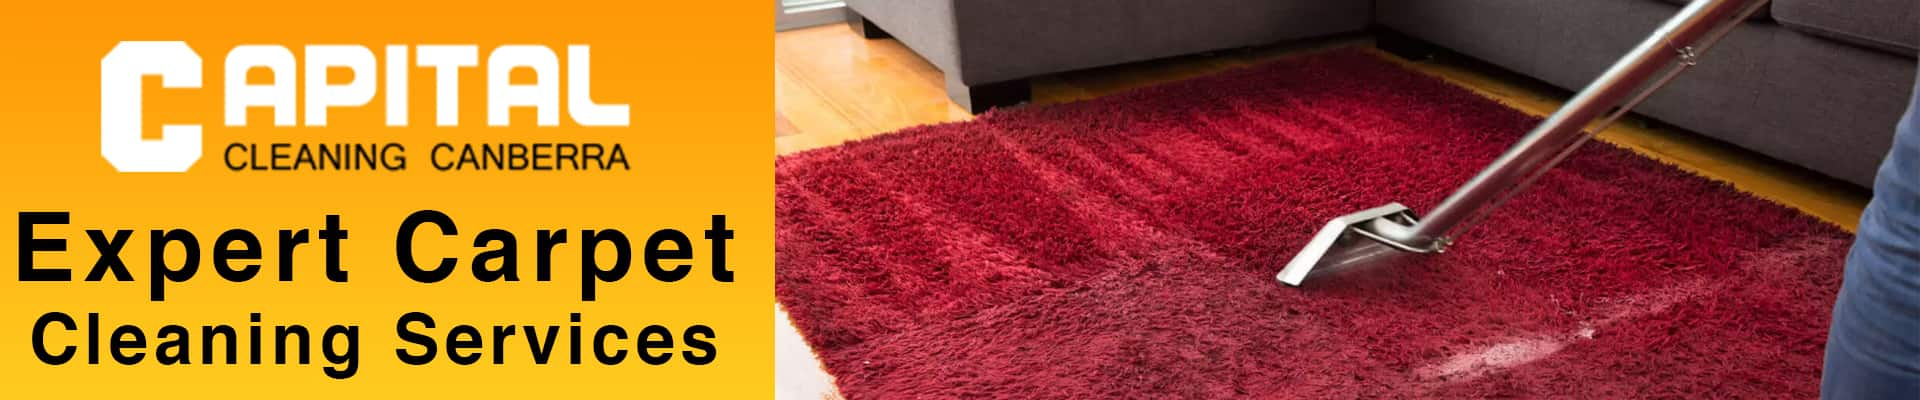 Expert Carpet Cleaning Services Capital Hill